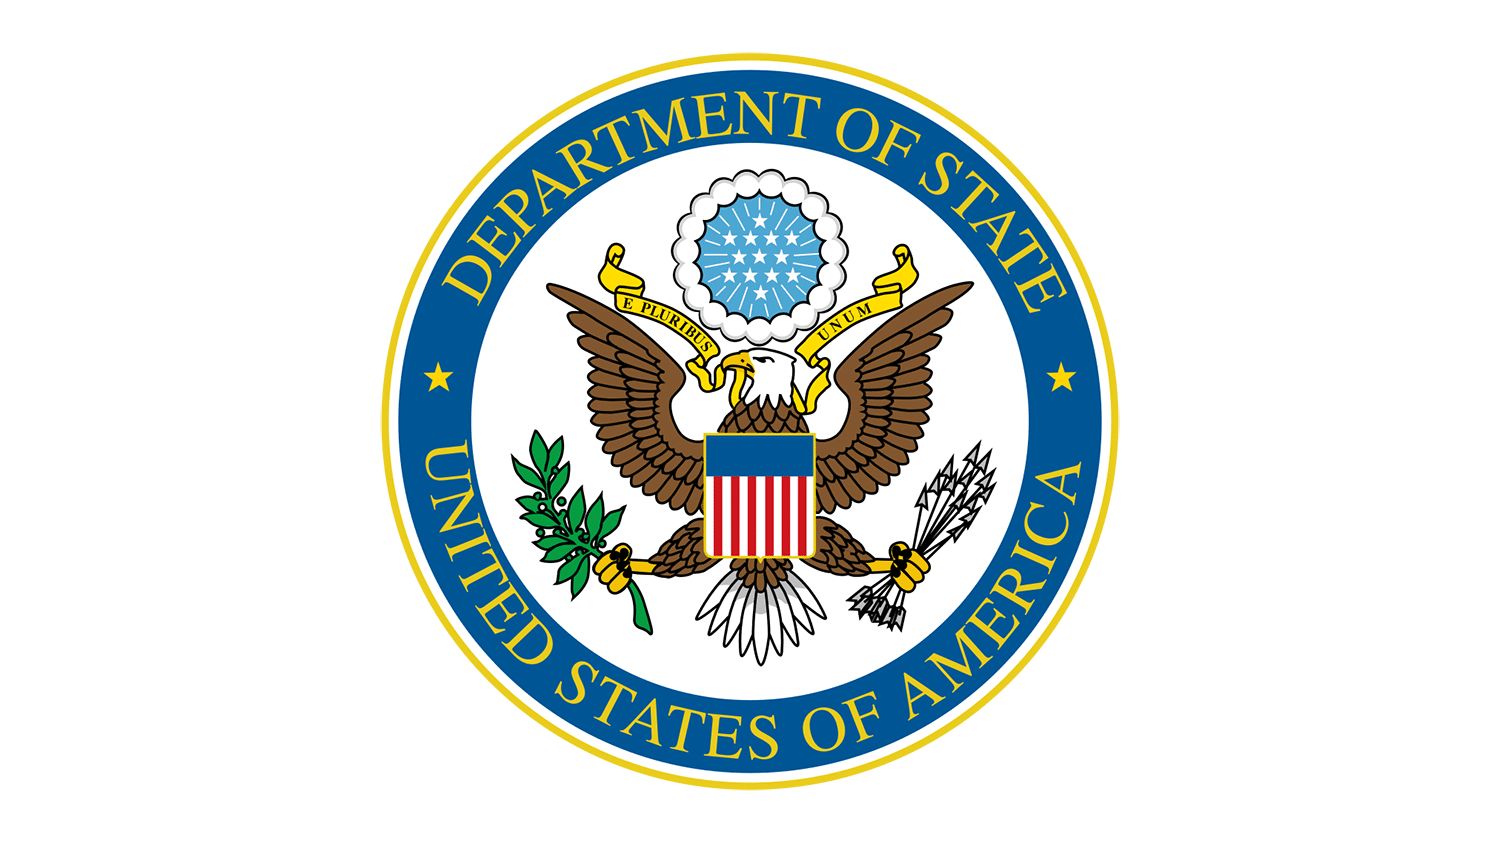 Seal_of_the_United_States_Department_of_State.1500